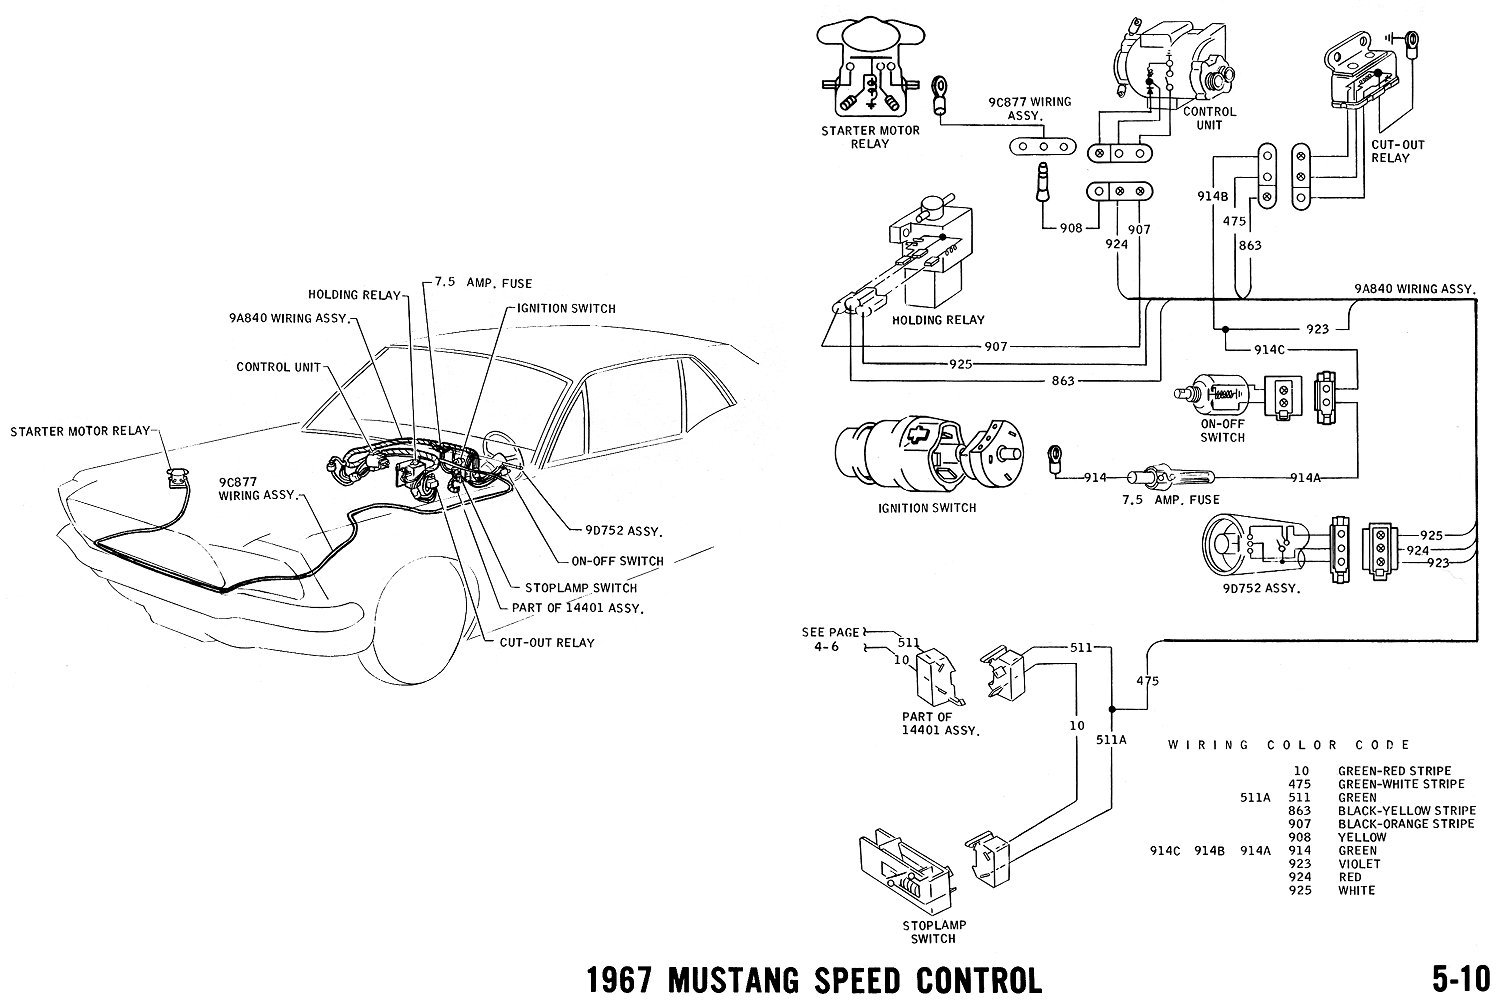 hight resolution of 1967 mustang speed control pictorial and schematic vacuum diagram